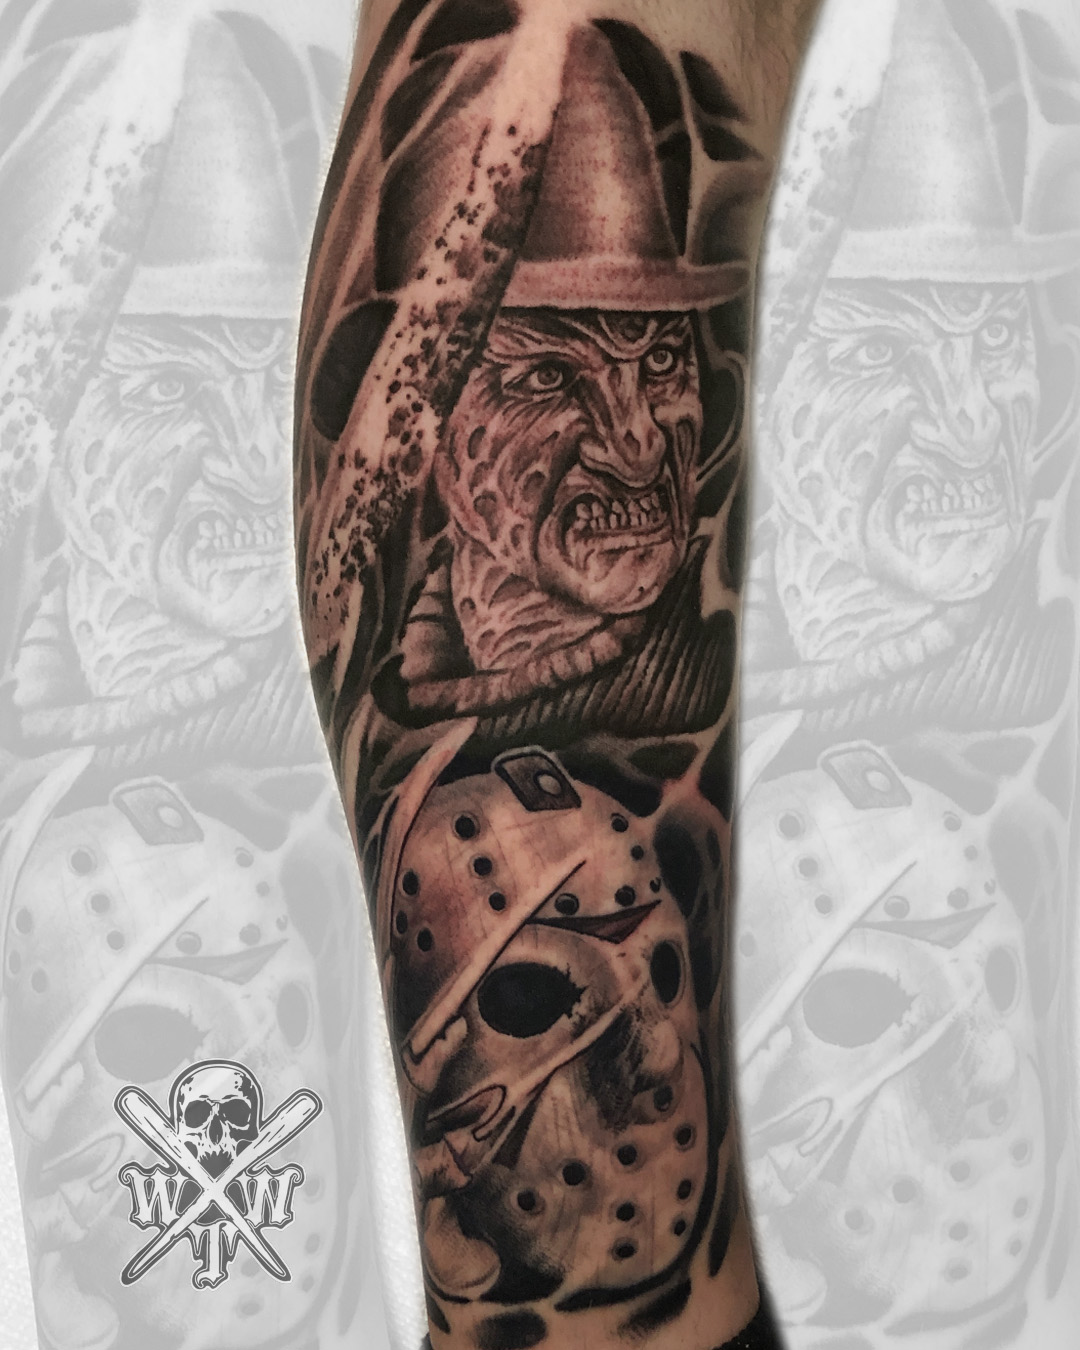 Tommy Wood Tattoo Artist At White Wolf Tattoo In Hazlet New Jersey